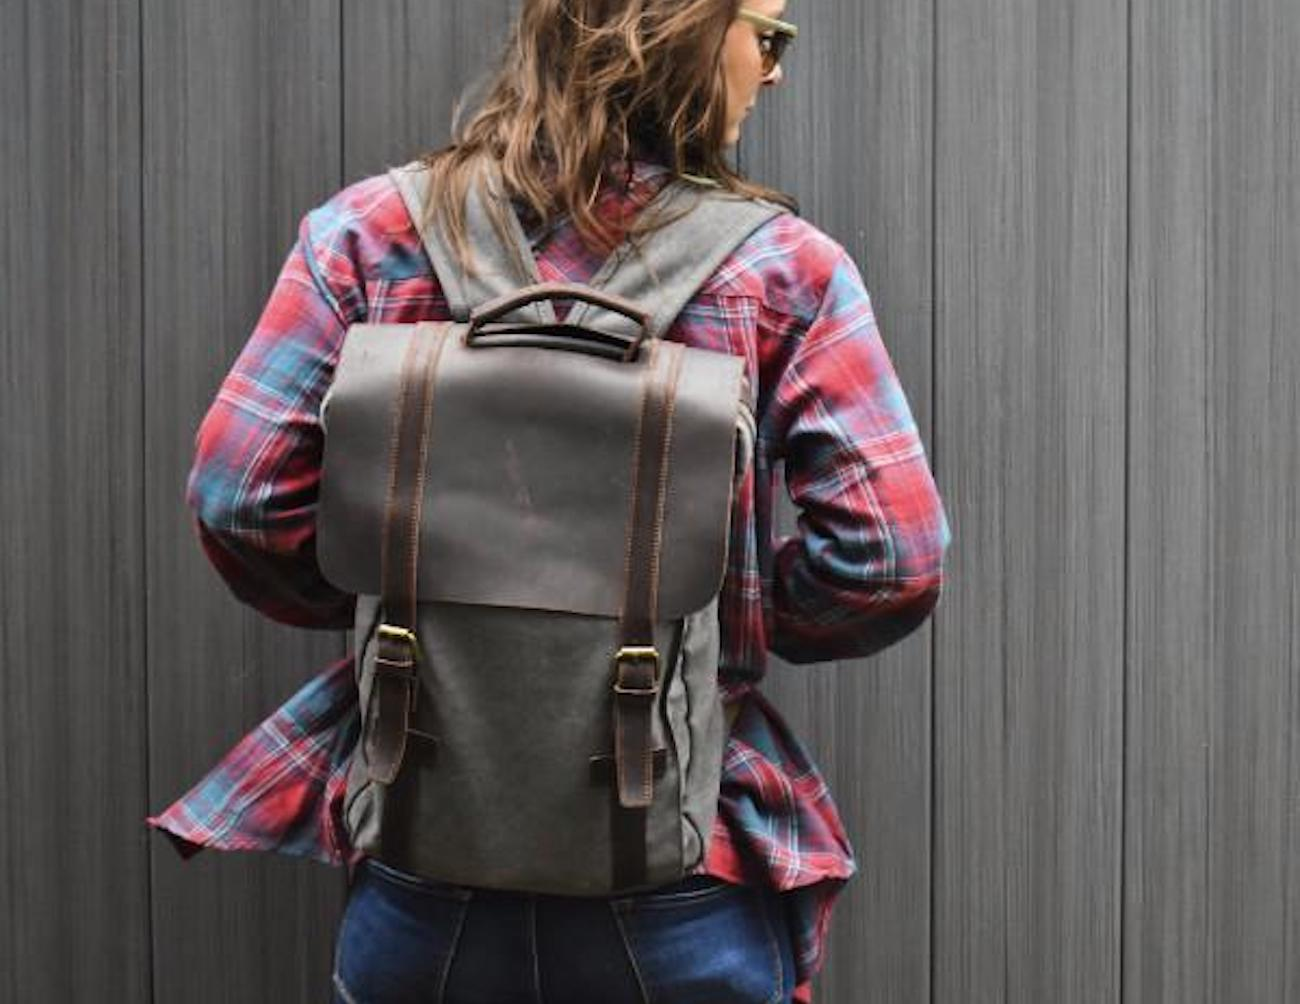 Protege+Classic+Canvas+Travel+Backpack